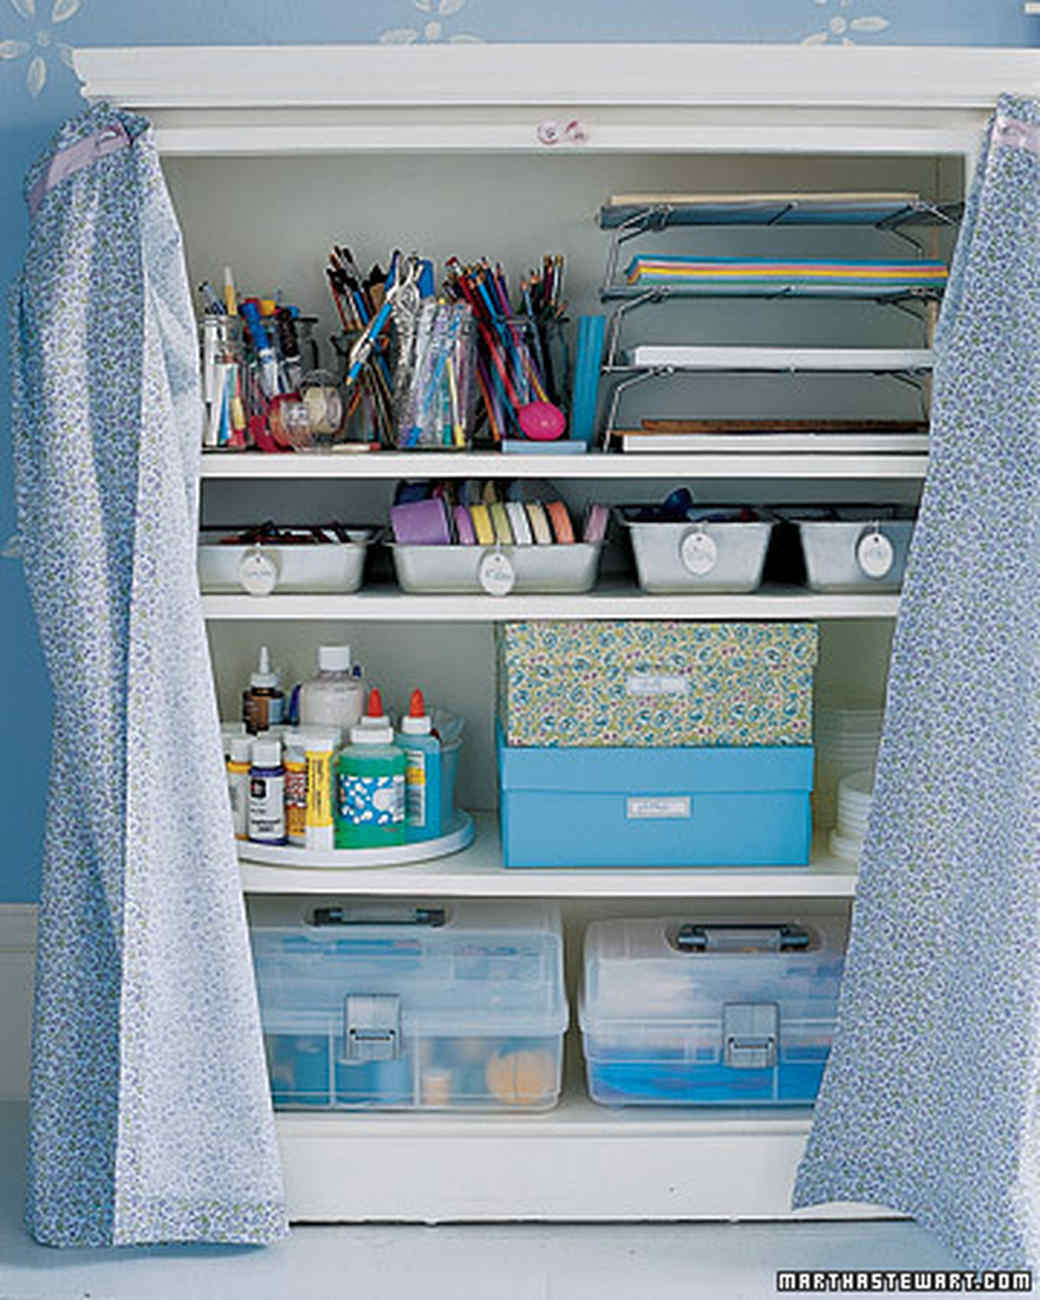 organisation shop closet shelf image storage products organiser closetmax clothing from neatfreak